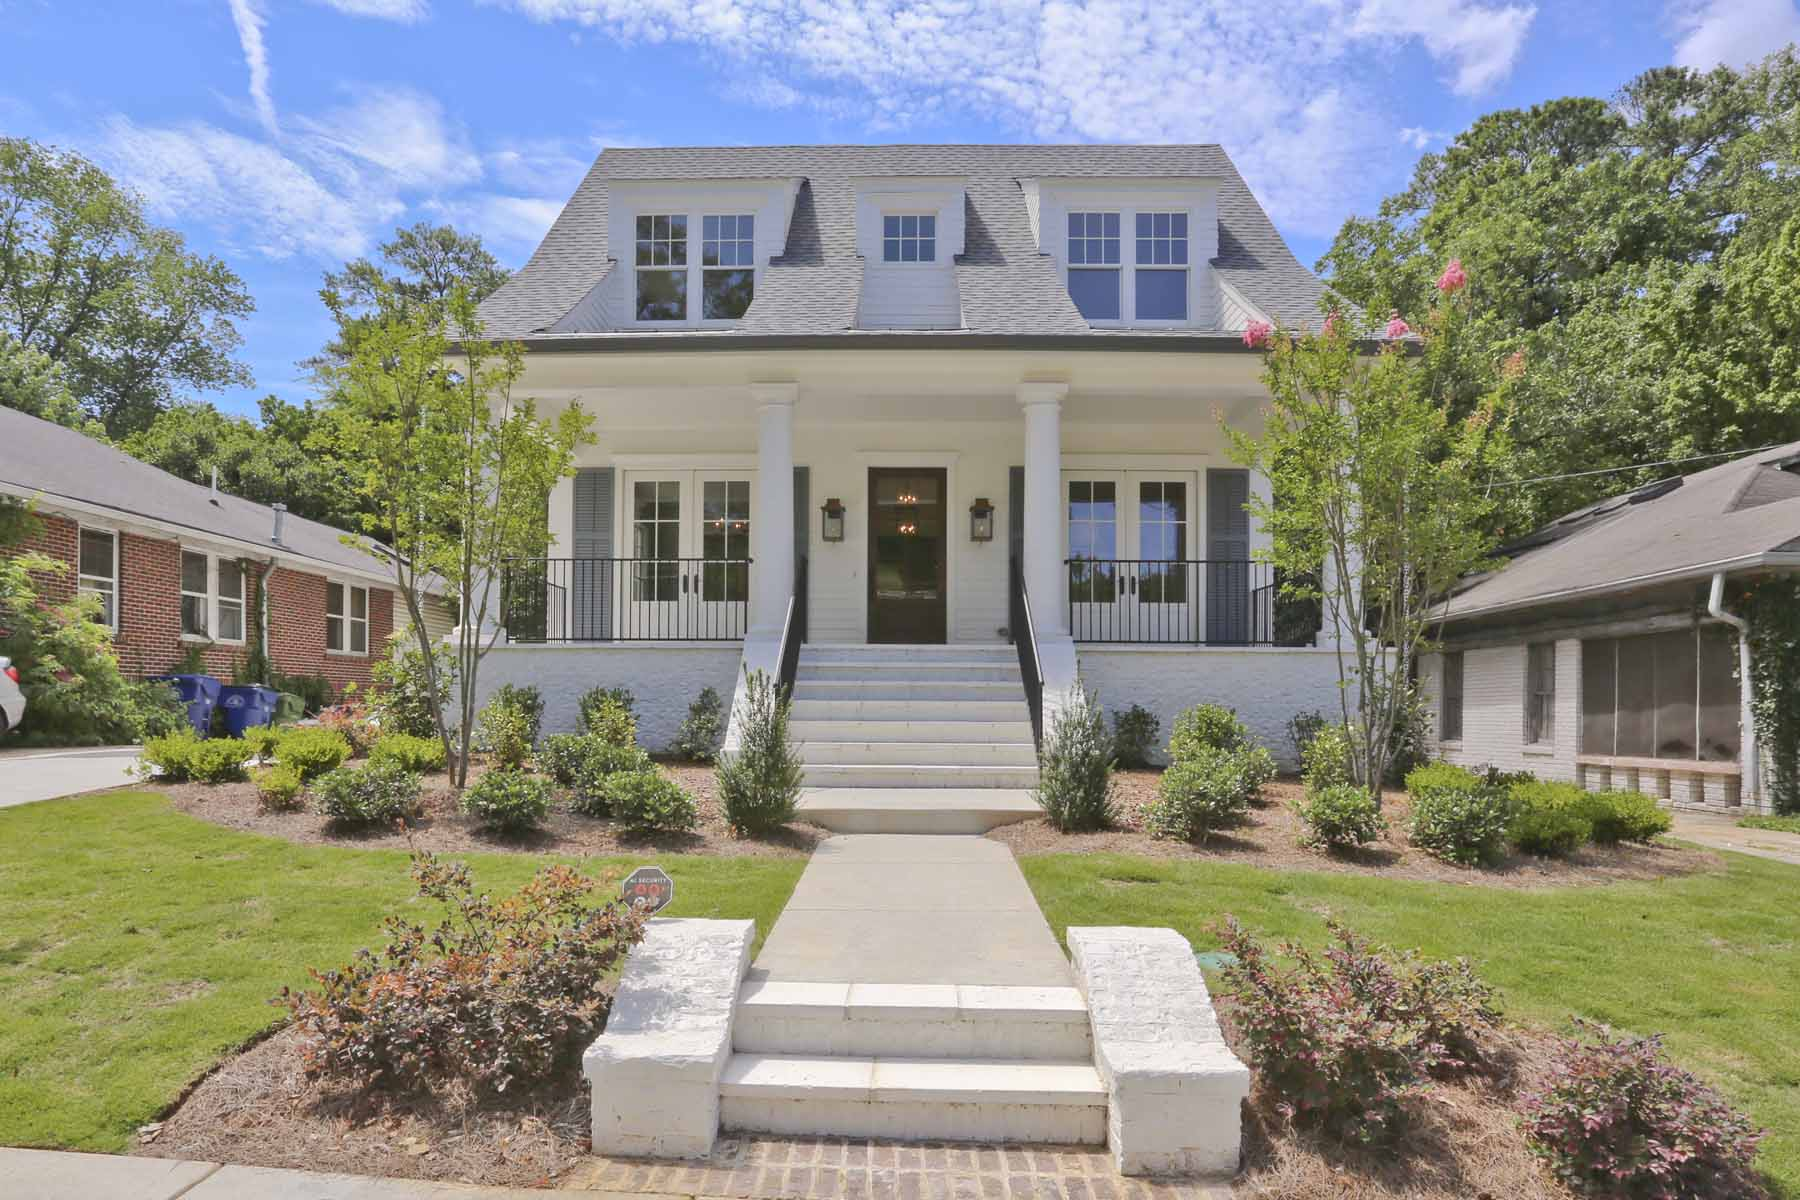 단독 가정 주택 용 매매 에 Newer Construction in Morningside Close to the BeltLine and Piedmont Park 797 Yorkshire Road NE Morningside, Atlanta, 조지아, 30306 미국